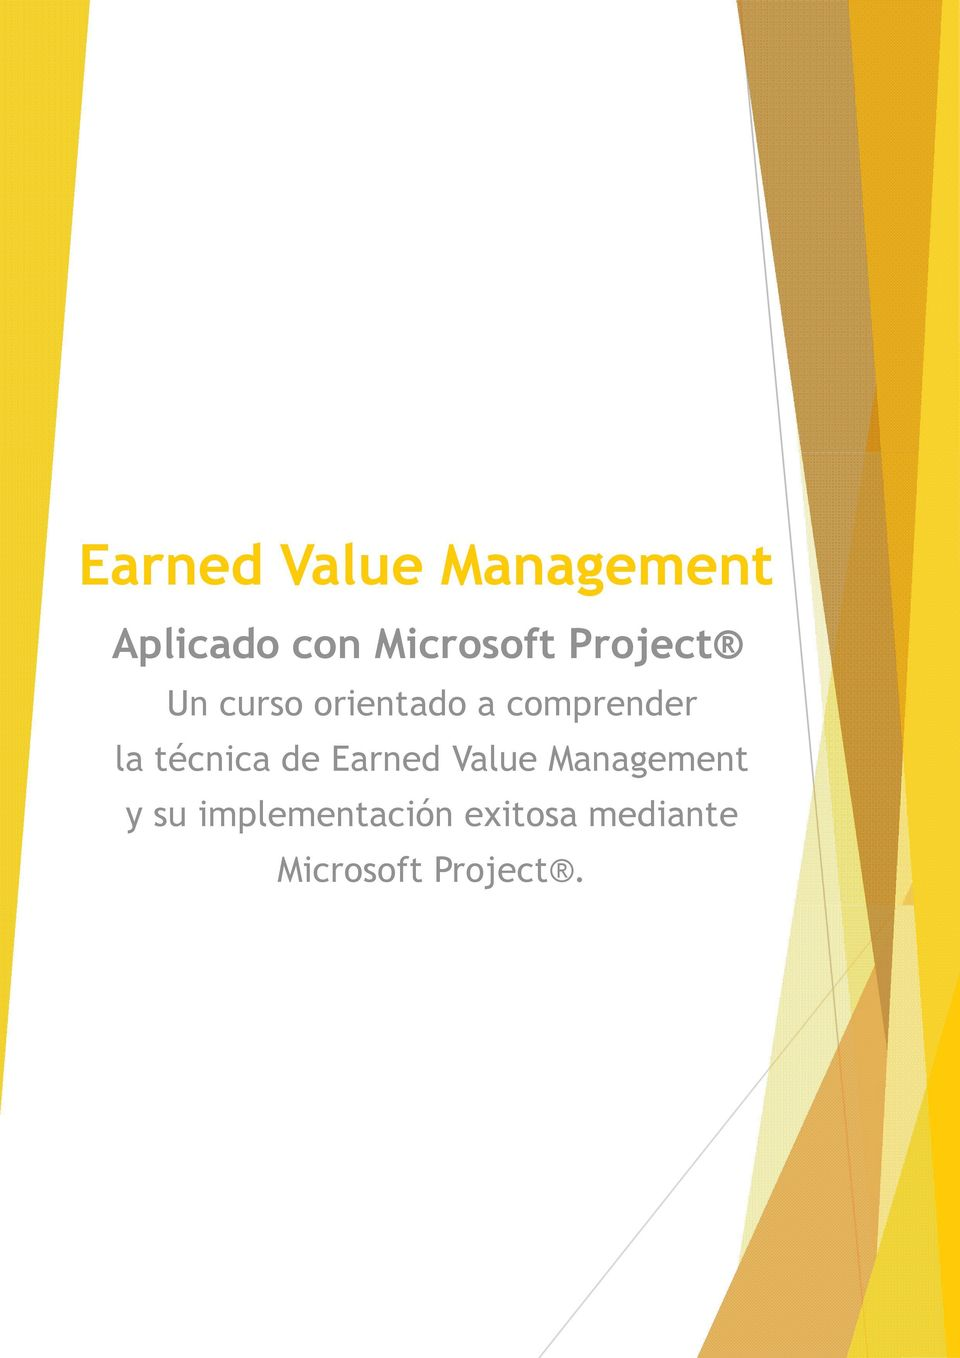 cmprender la técnica de Earned Value